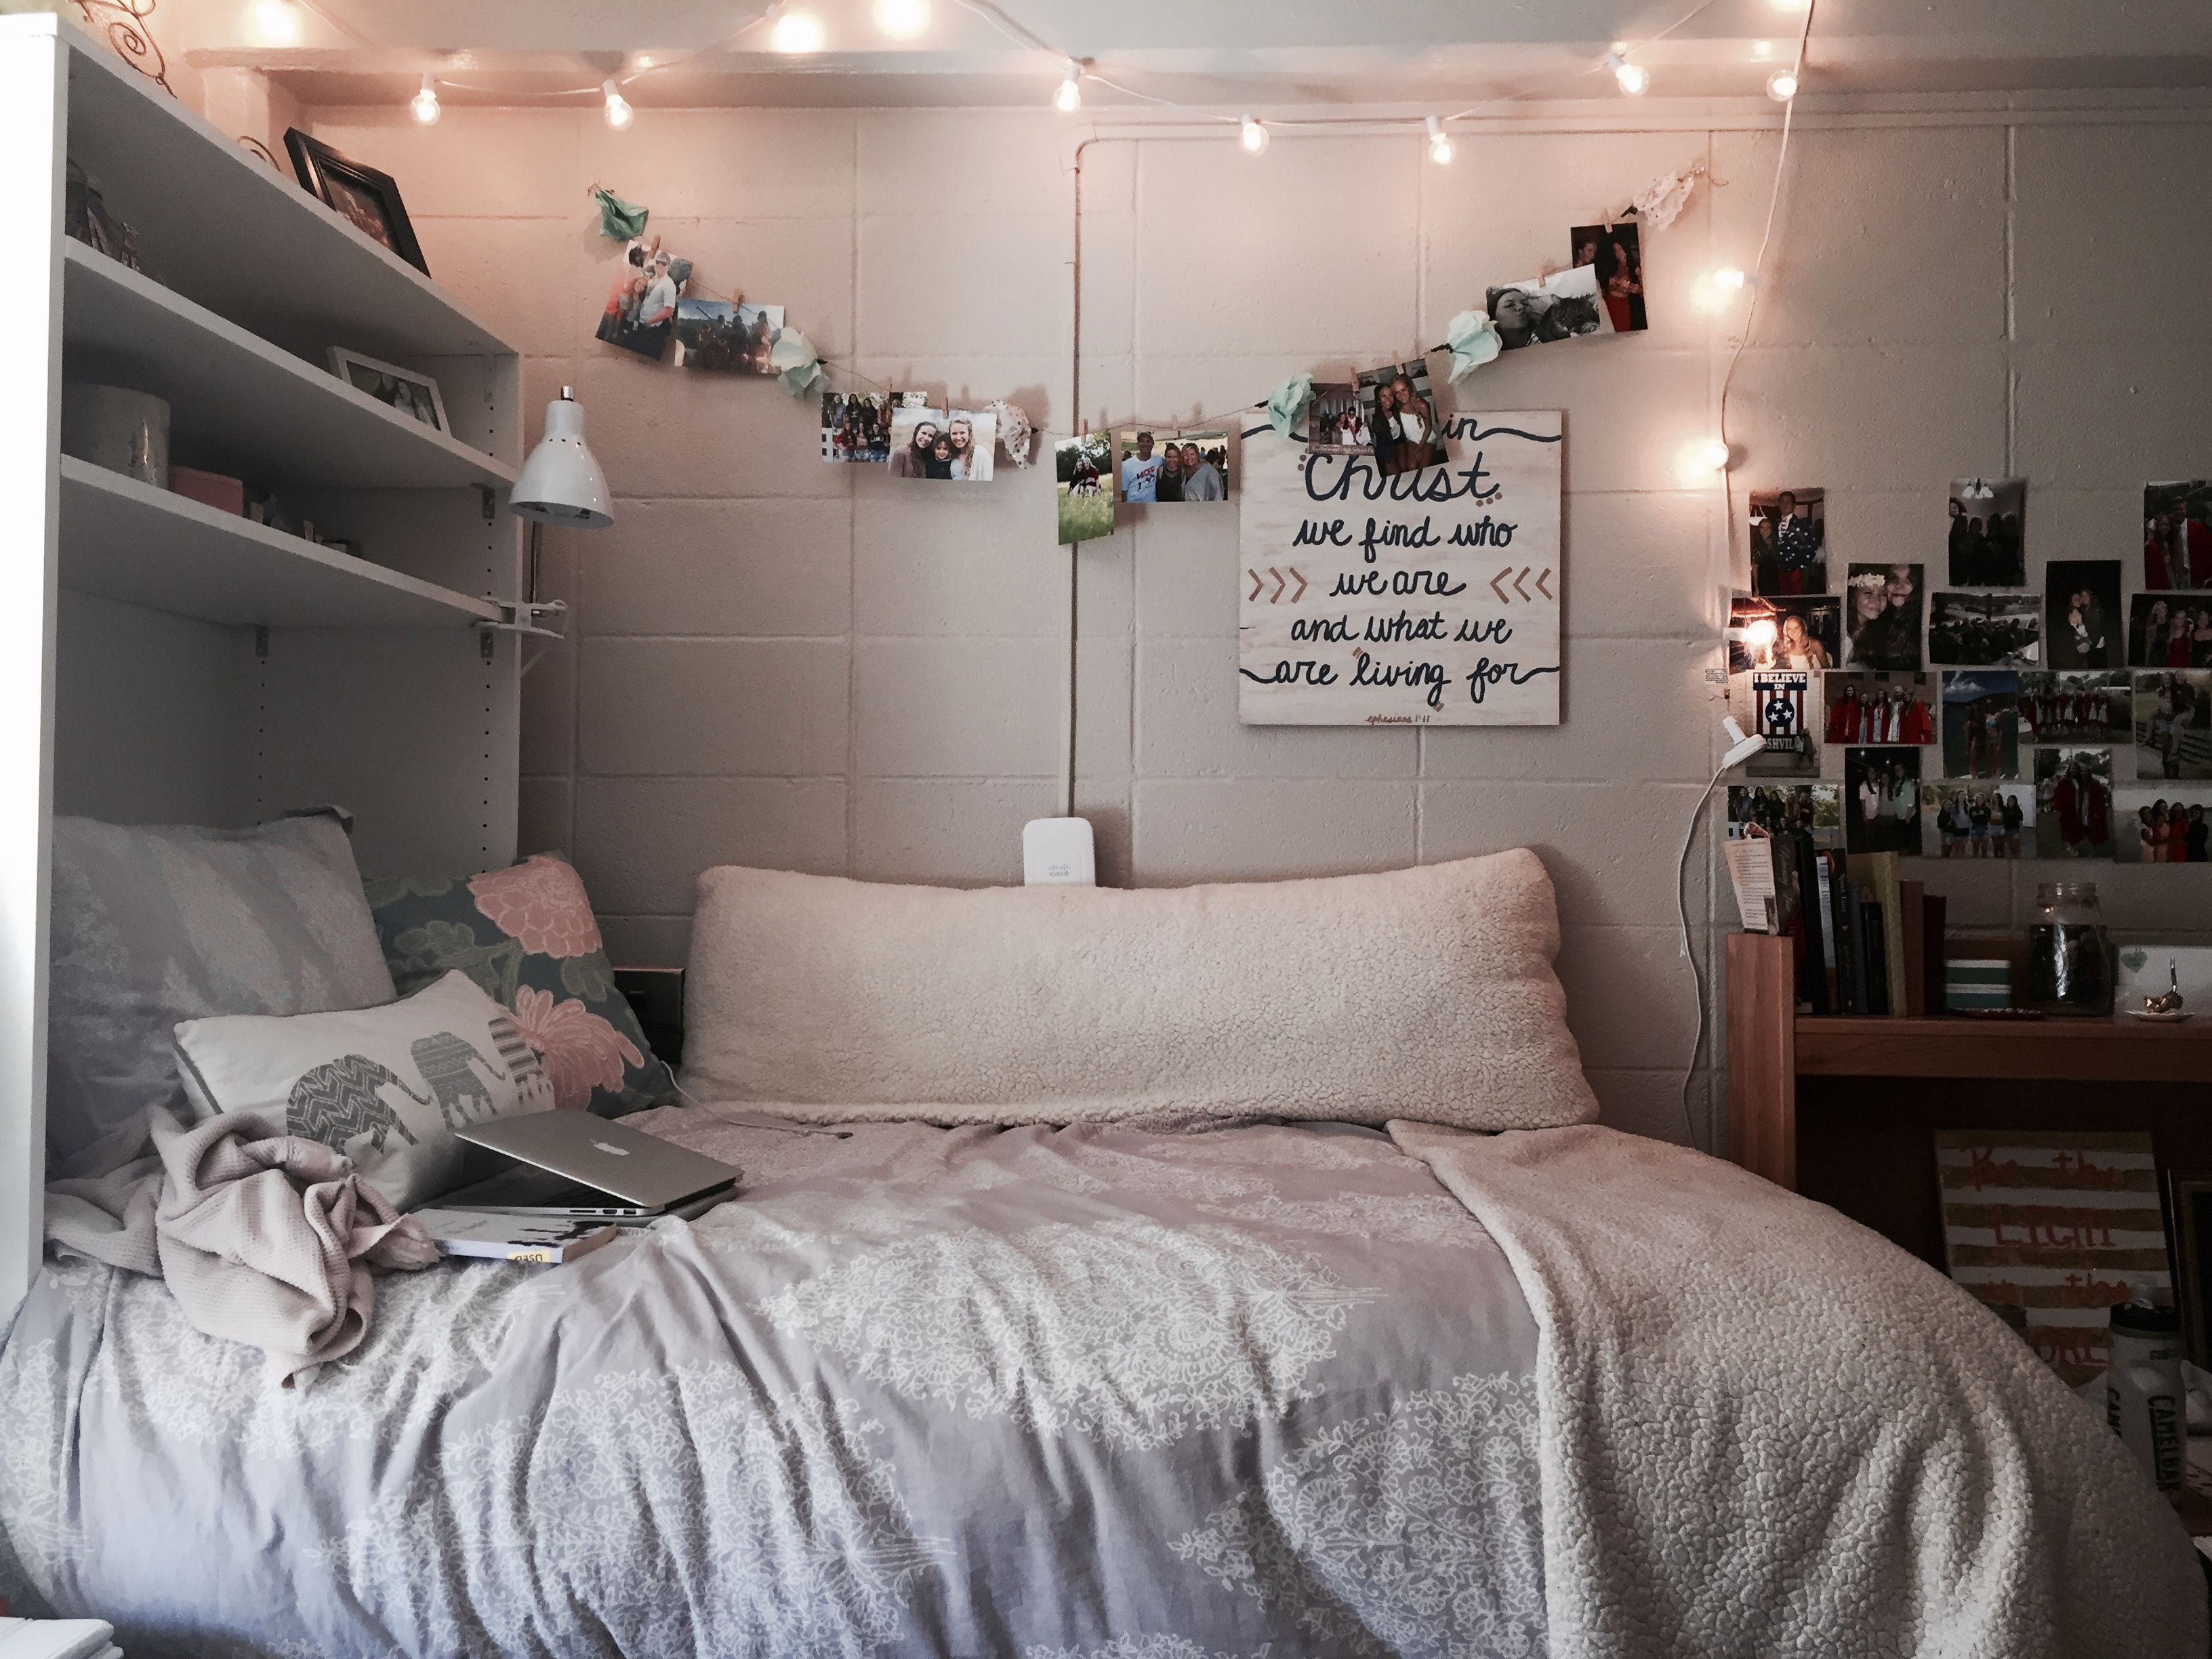 Adorabliss decoraci n de casa pinterest dorm for Room styles bedroom